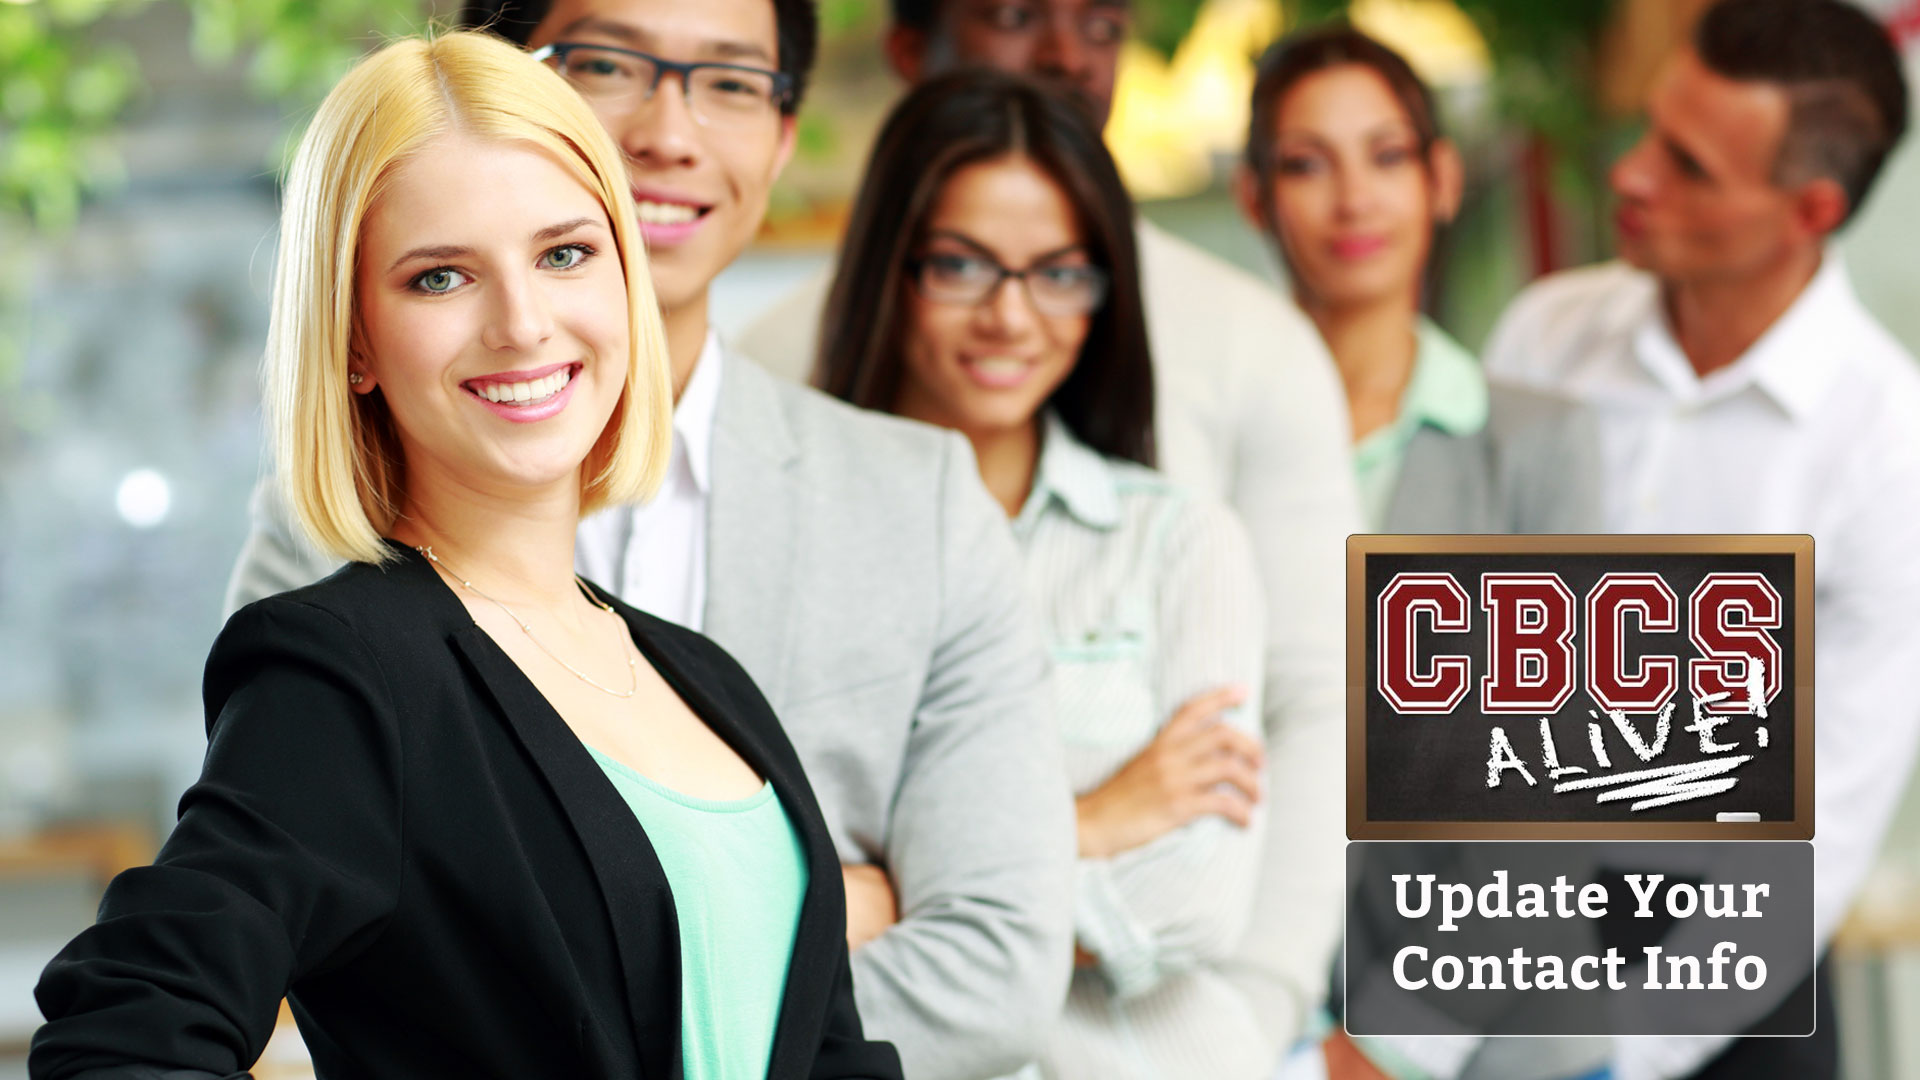 Chesapeake Bible College - Update Contact Info